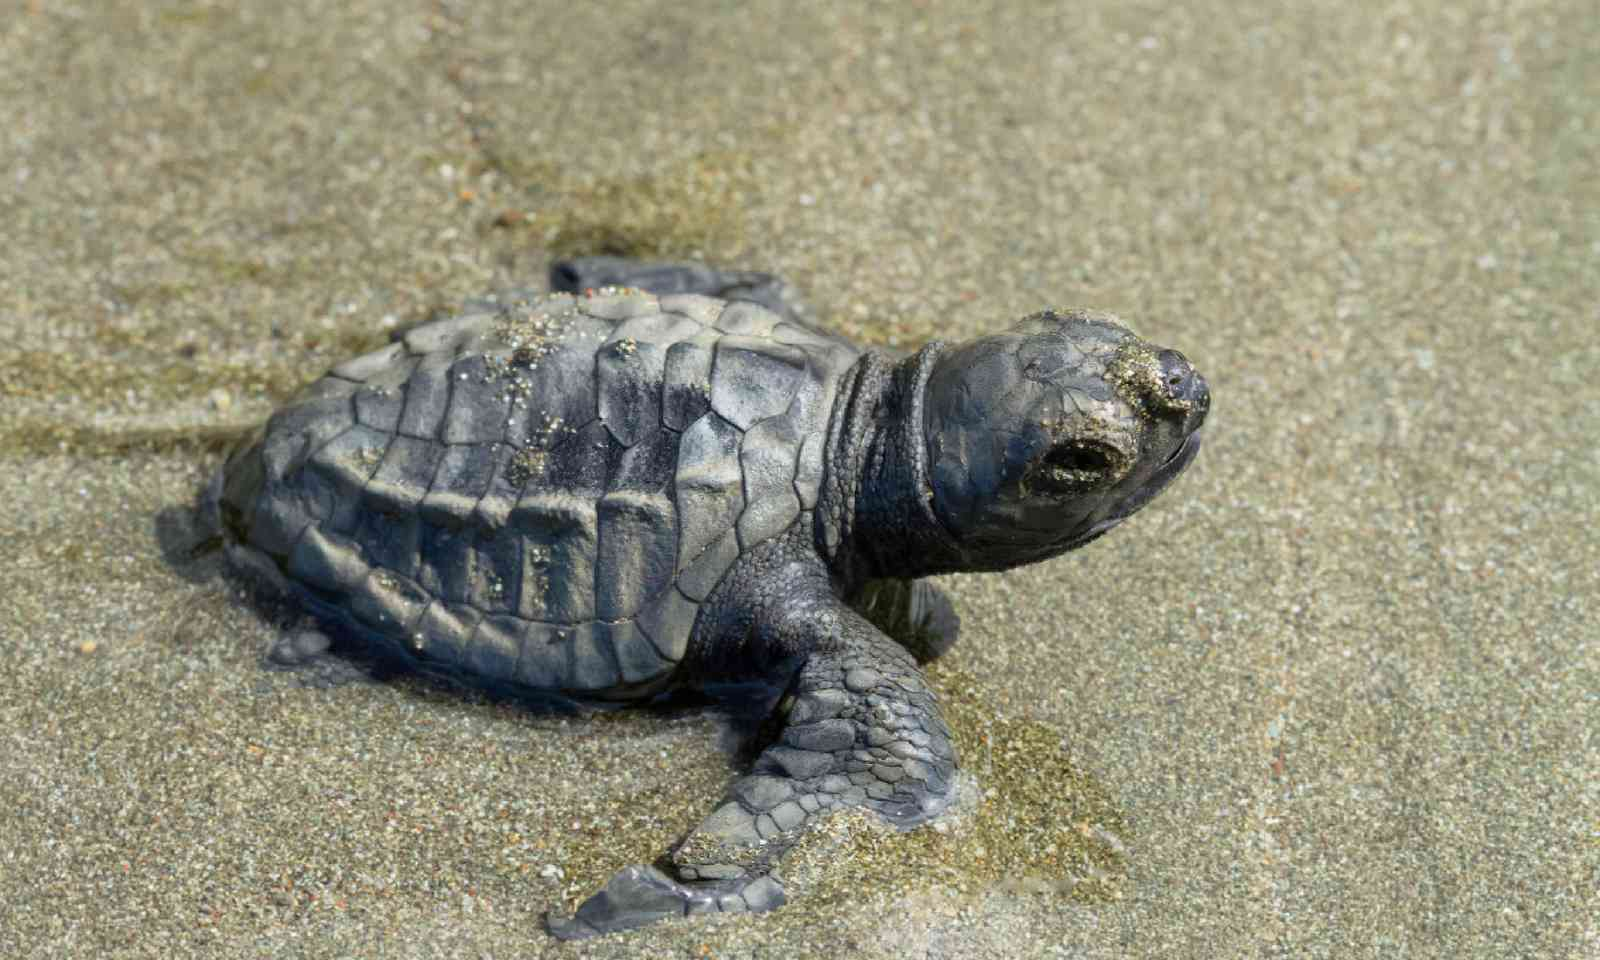 Olive ridley turtle (Shutterstock)